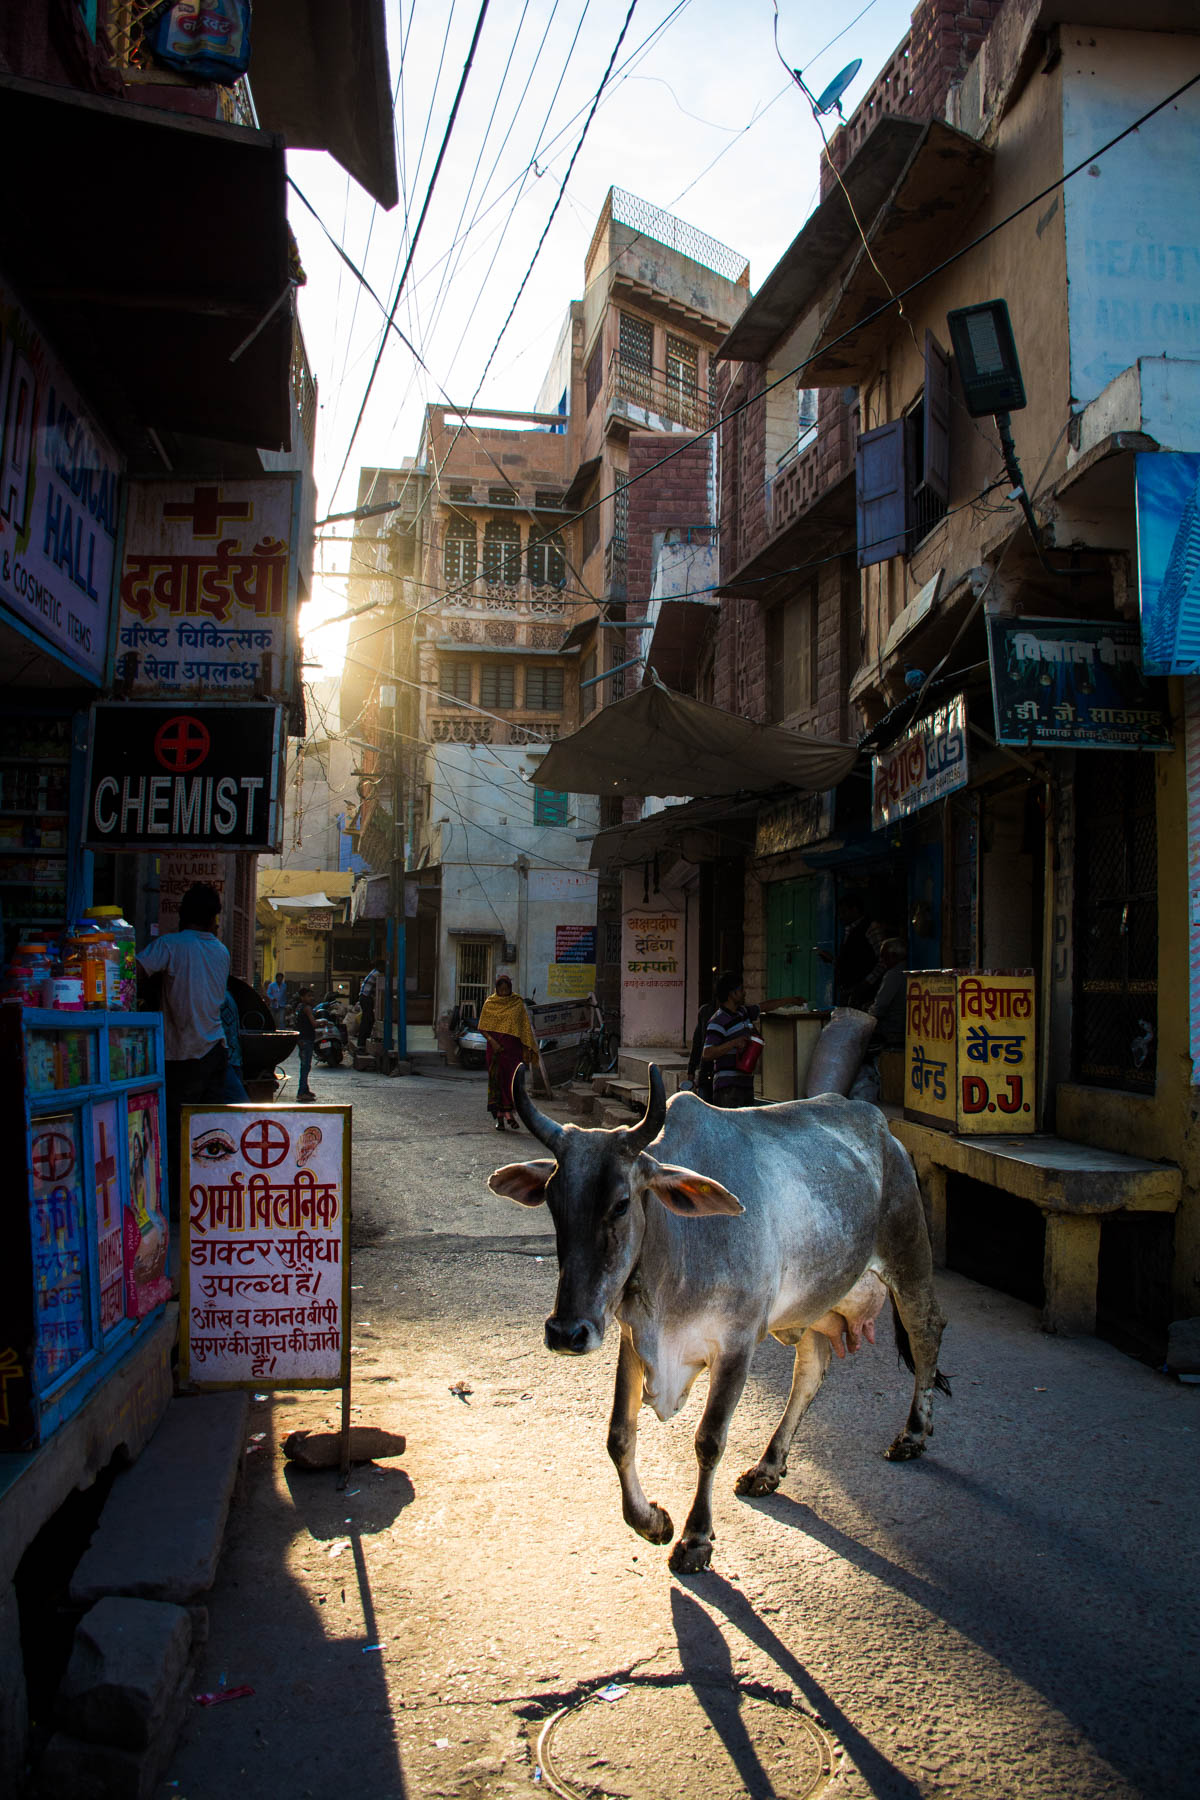 A rogue cow crossing the streets during sunset in Jodhpur, Rajasthan, India.